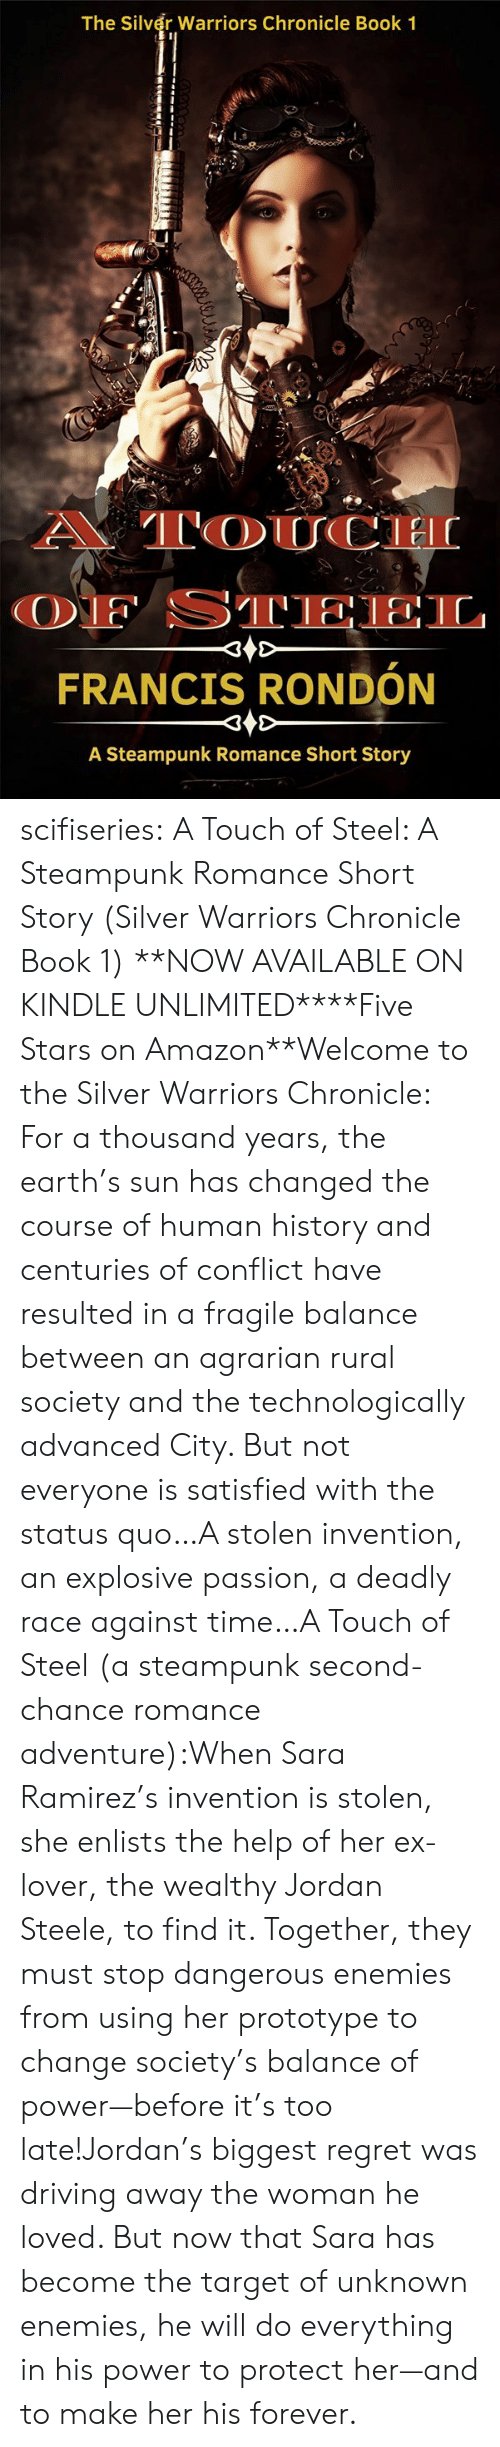 Changed: The Silver Warriors Chronicle Book 1  A TOUCH  OF STEEL  FRANCIS RONDÓN  A Steampunk Romance Short Story scifiseries:   A Touch of Steel: A Steampunk Romance Short Story (Silver Warriors Chronicle Book 1)   **NOW AVAILABLE ON KINDLE UNLIMITED****Five Stars on Amazon**Welcome to the Silver Warriors Chronicle: For a thousand years, the earth's sun has changed the course of human history and centuries of conflict have resulted in a fragile balance between an agrarian rural society and the technologically advanced City. But not everyone is satisfied with the status quo…A stolen invention, an explosive passion, a deadly race against time…A Touch of Steel (a steampunk second-chance romance adventure):When Sara Ramirez's invention is stolen, she enlists the help of her ex-lover, the wealthy Jordan Steele, to find it. Together, they must stop dangerous enemies from using her prototype to change society's balance of power—before it's too late!Jordan's biggest regret was driving away the woman he loved. But now that Sara has become the target of unknown enemies, he will do everything in his power to protect her—and to make her his forever.